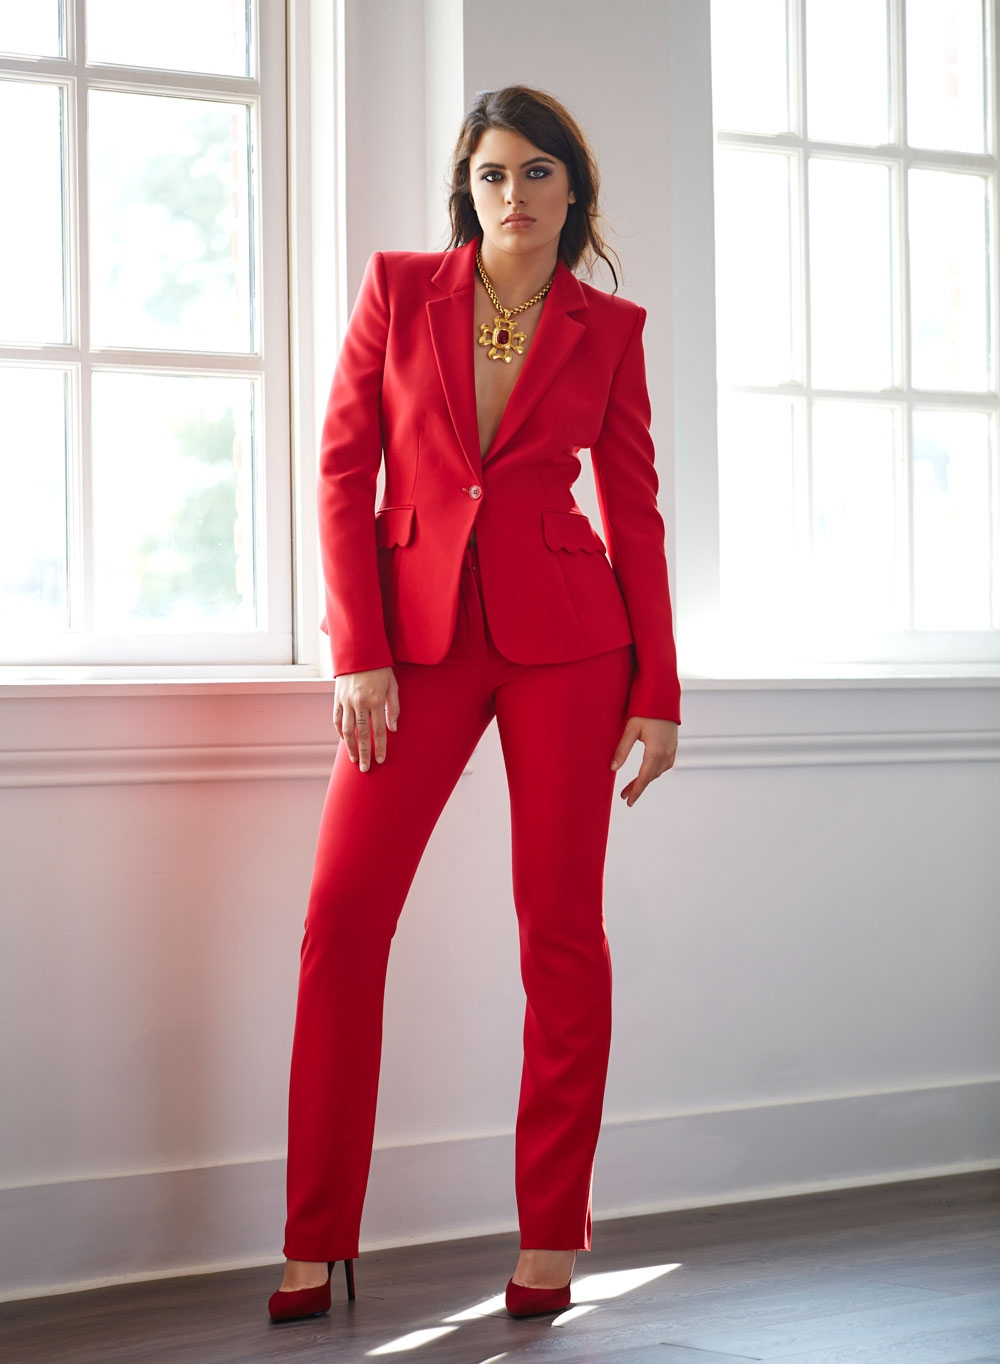 Altuzzara suit, Stuart Weitzman heels, Chanel necklace